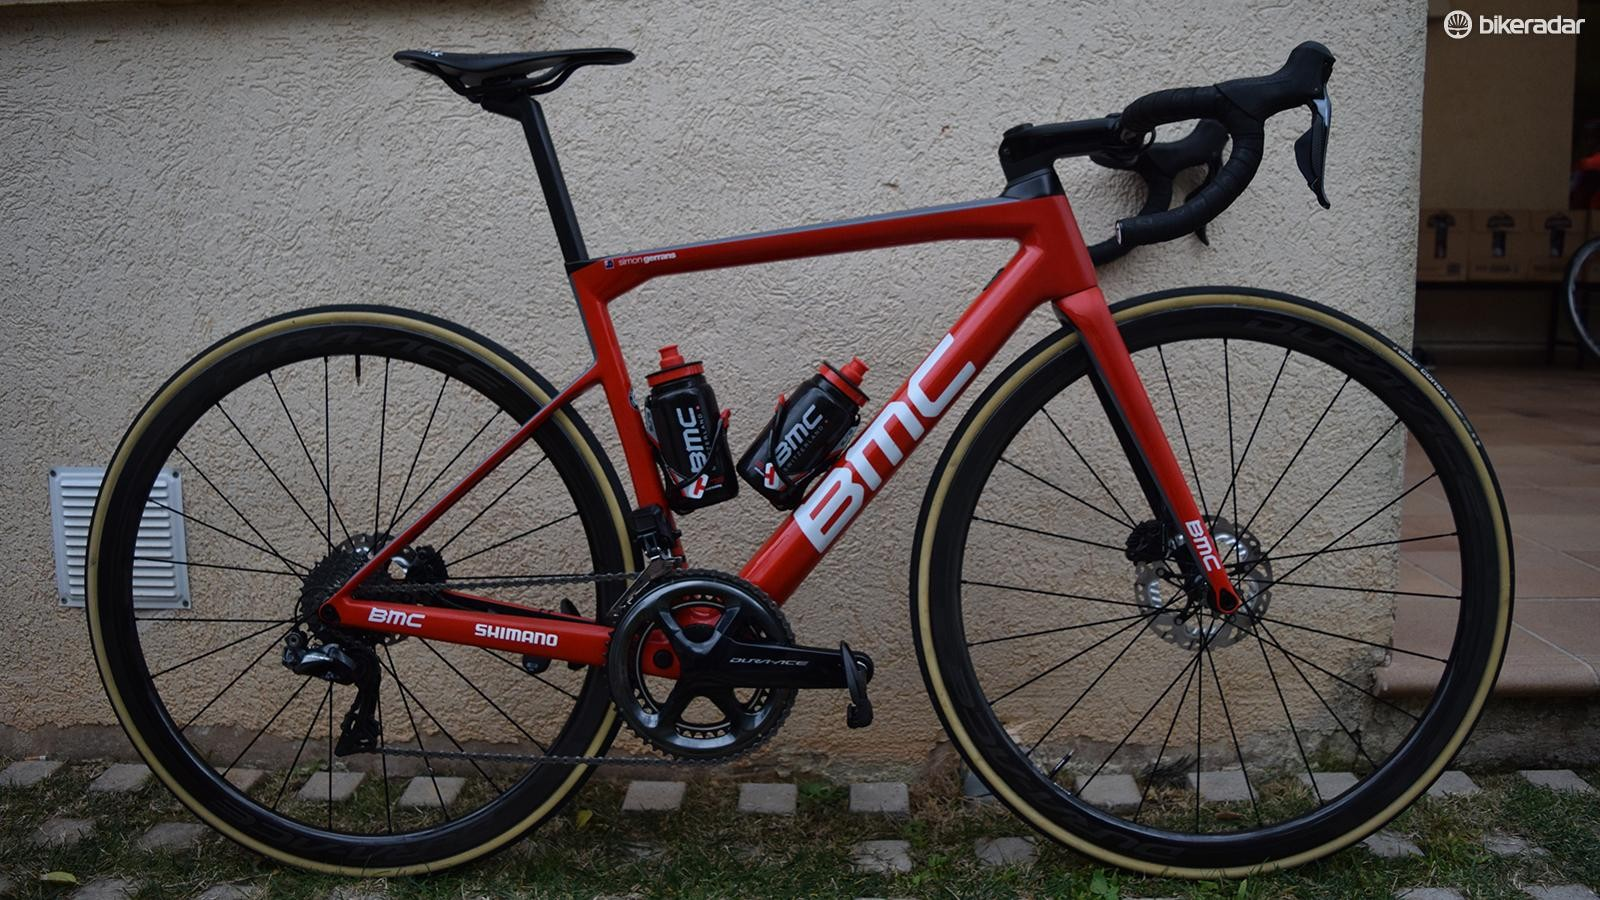 Simon Gerrans' 2018 BMC Teammachine SLR01 Disc